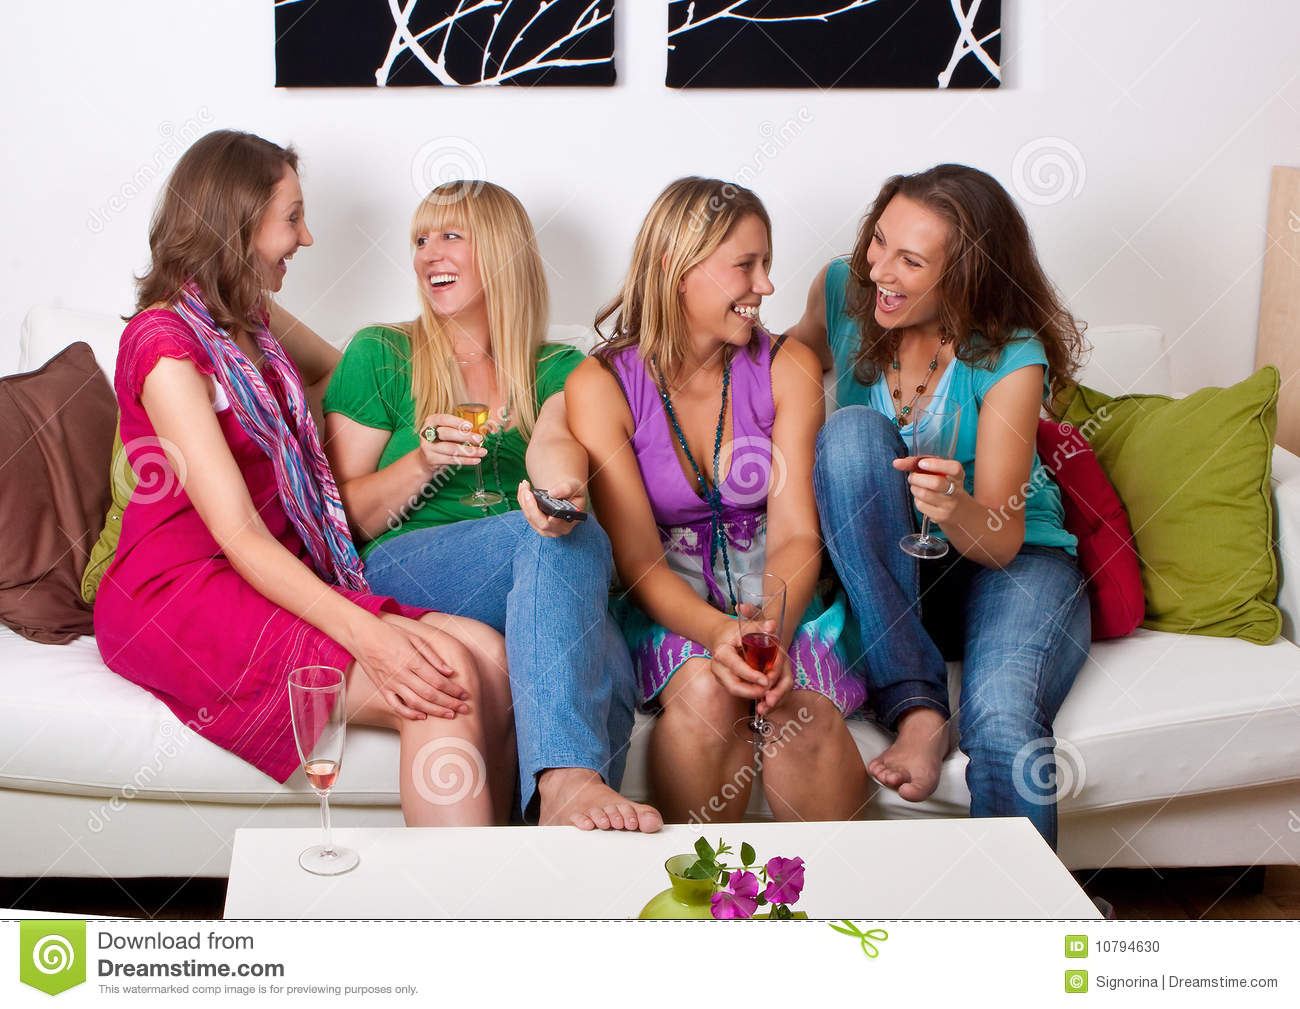 Girlfriends on the couch 7